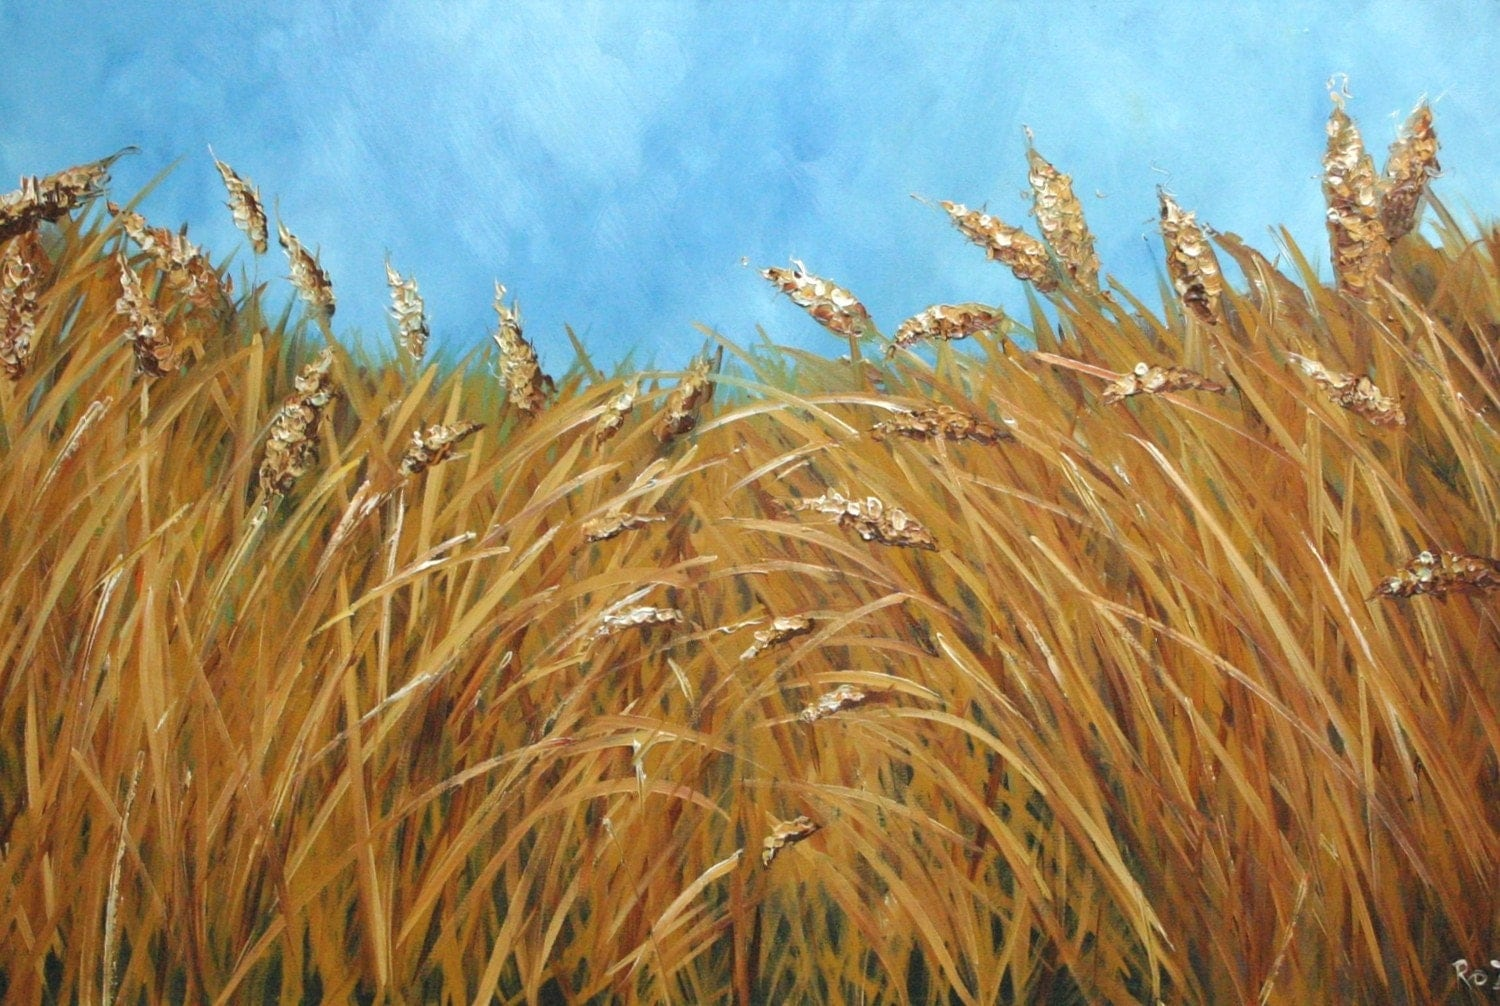 Wheat 17 24x36 Inch Original Oil Painting By Roz